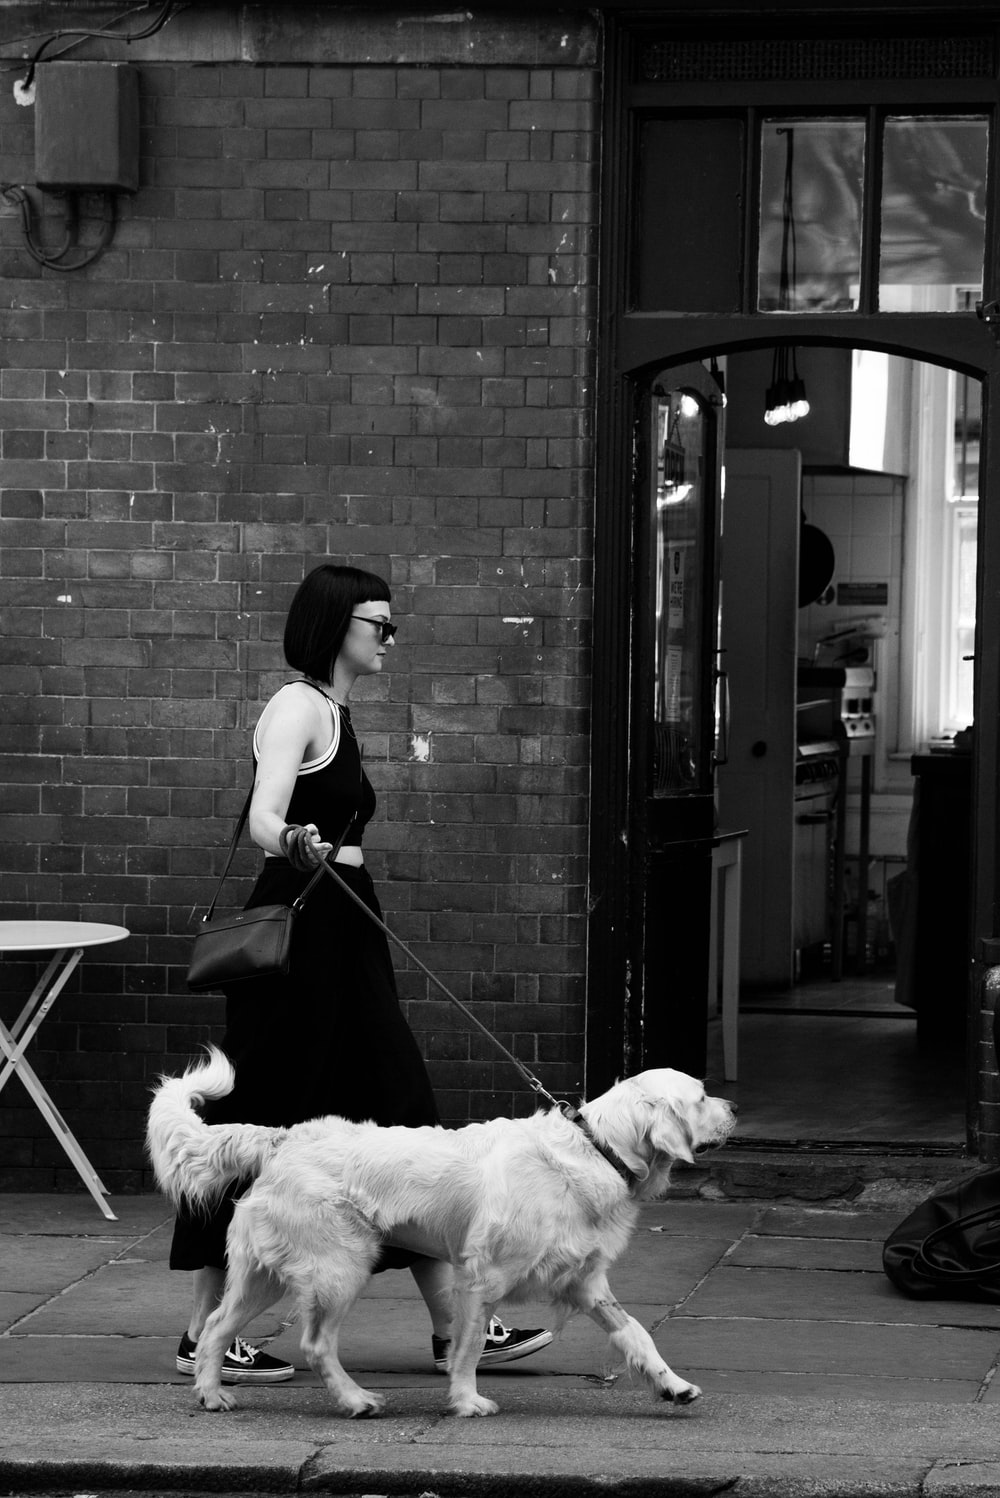 grayscale photo of woman walking with dog